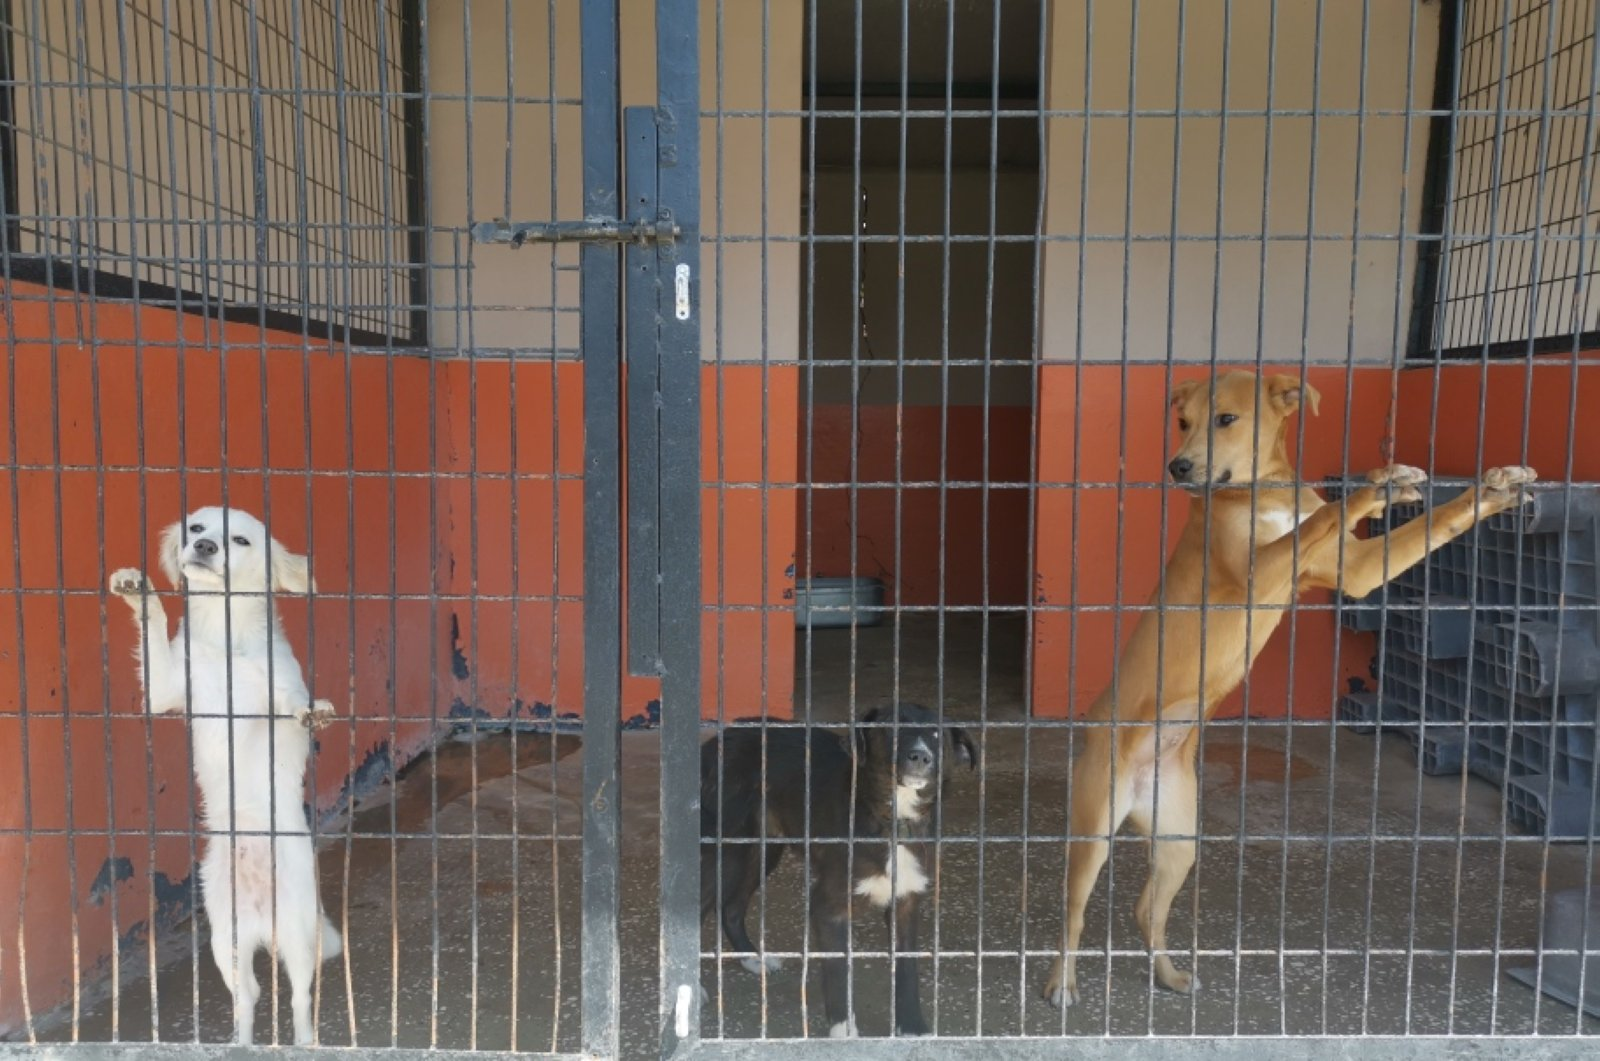 Dogs at an animal shelter in Avcılar district in Istanbul, Turkey, April 24, 2020. (DHA Photo)